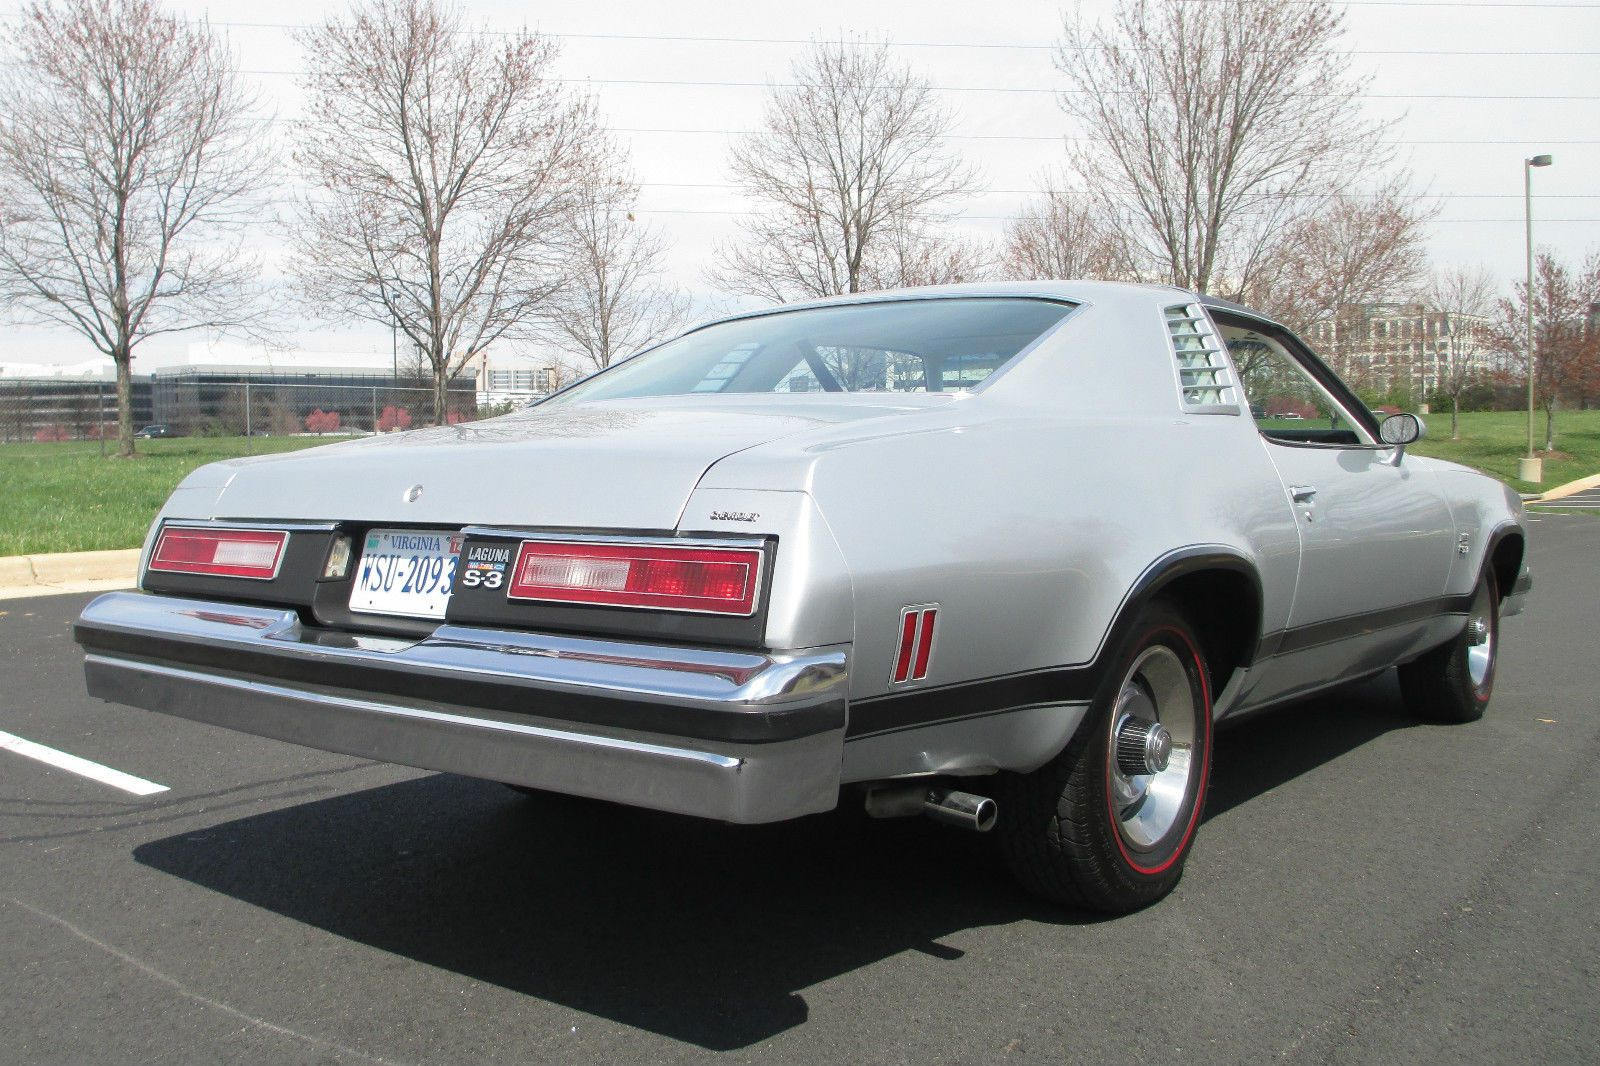 1976 chevrolet chevelle laguna s 3 the laguna s 3 was built from